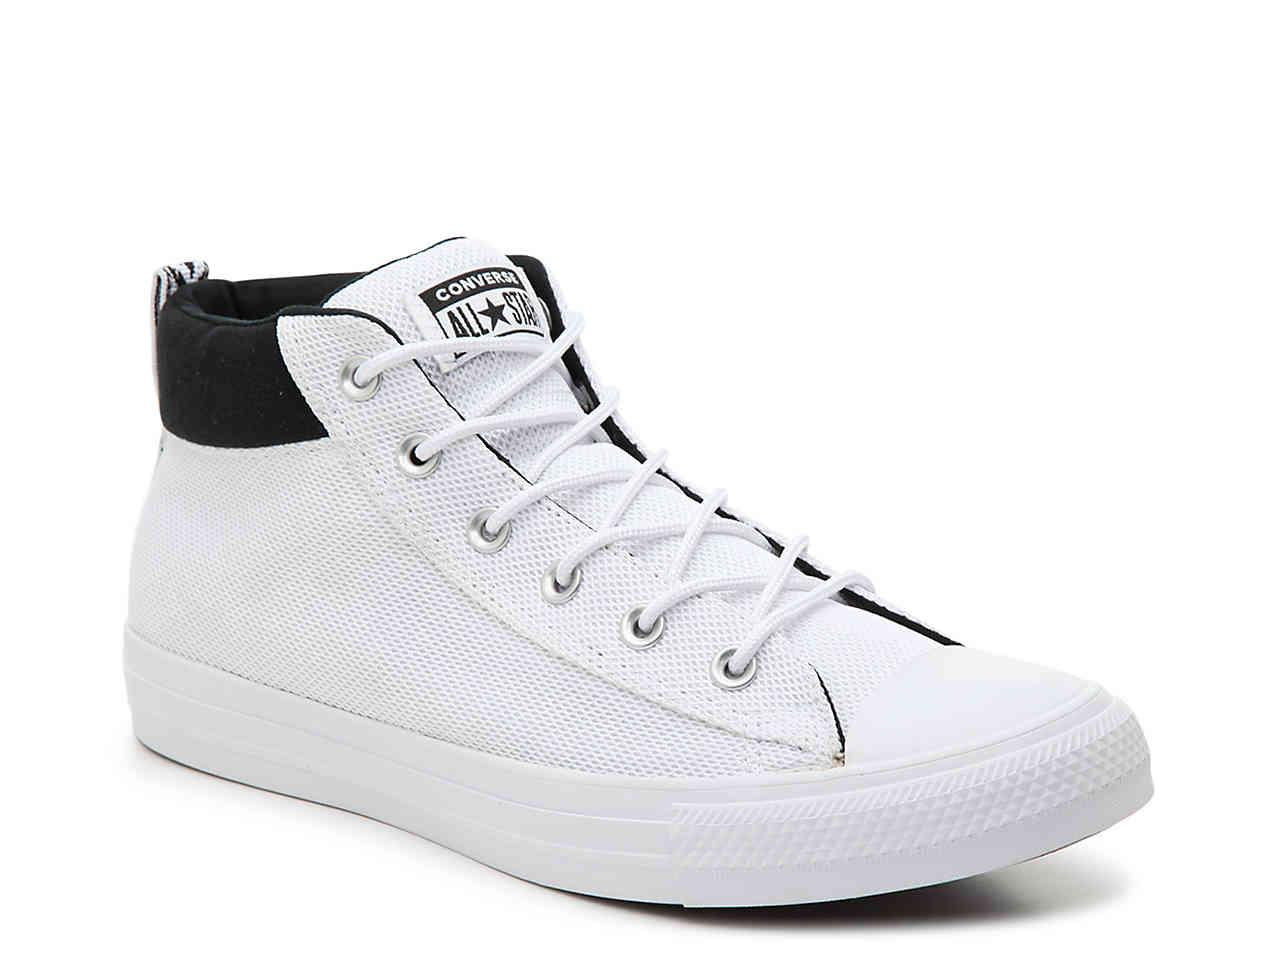 Lyst - Converse Chuck Taylor All Star Street Mid-top Sneaker in ... 86e20bce3